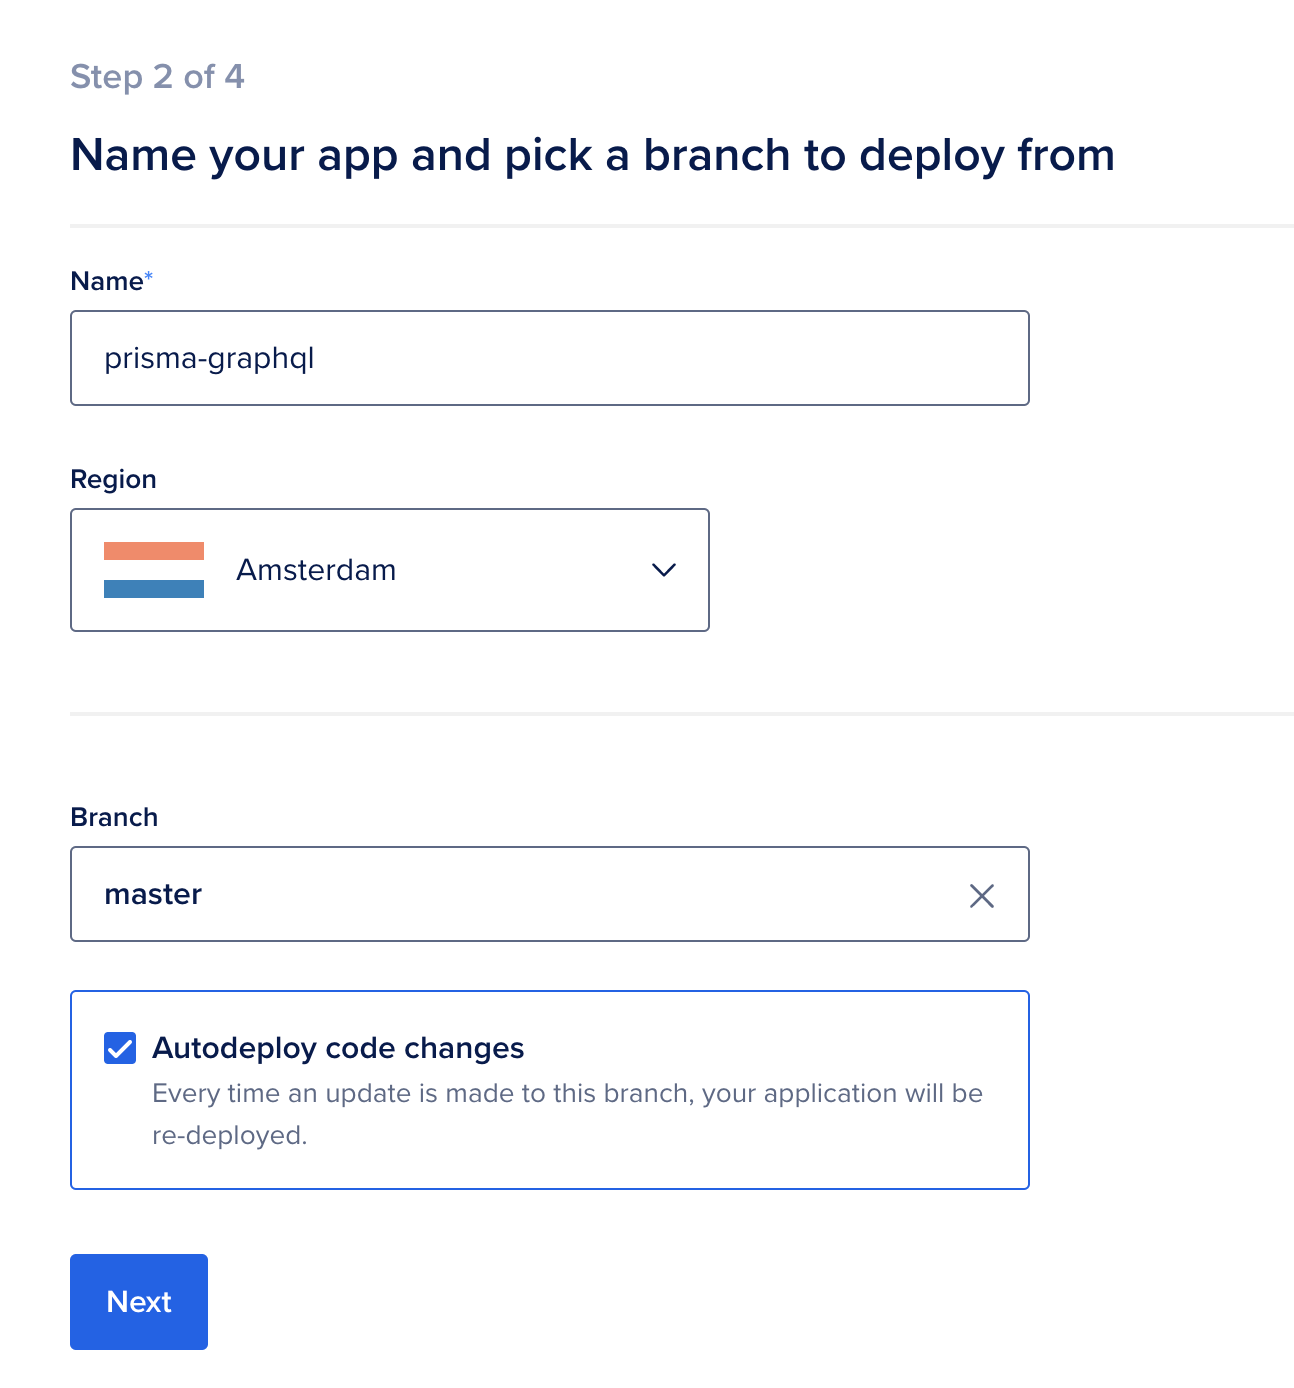 Name your app and pick a branch to deploy from